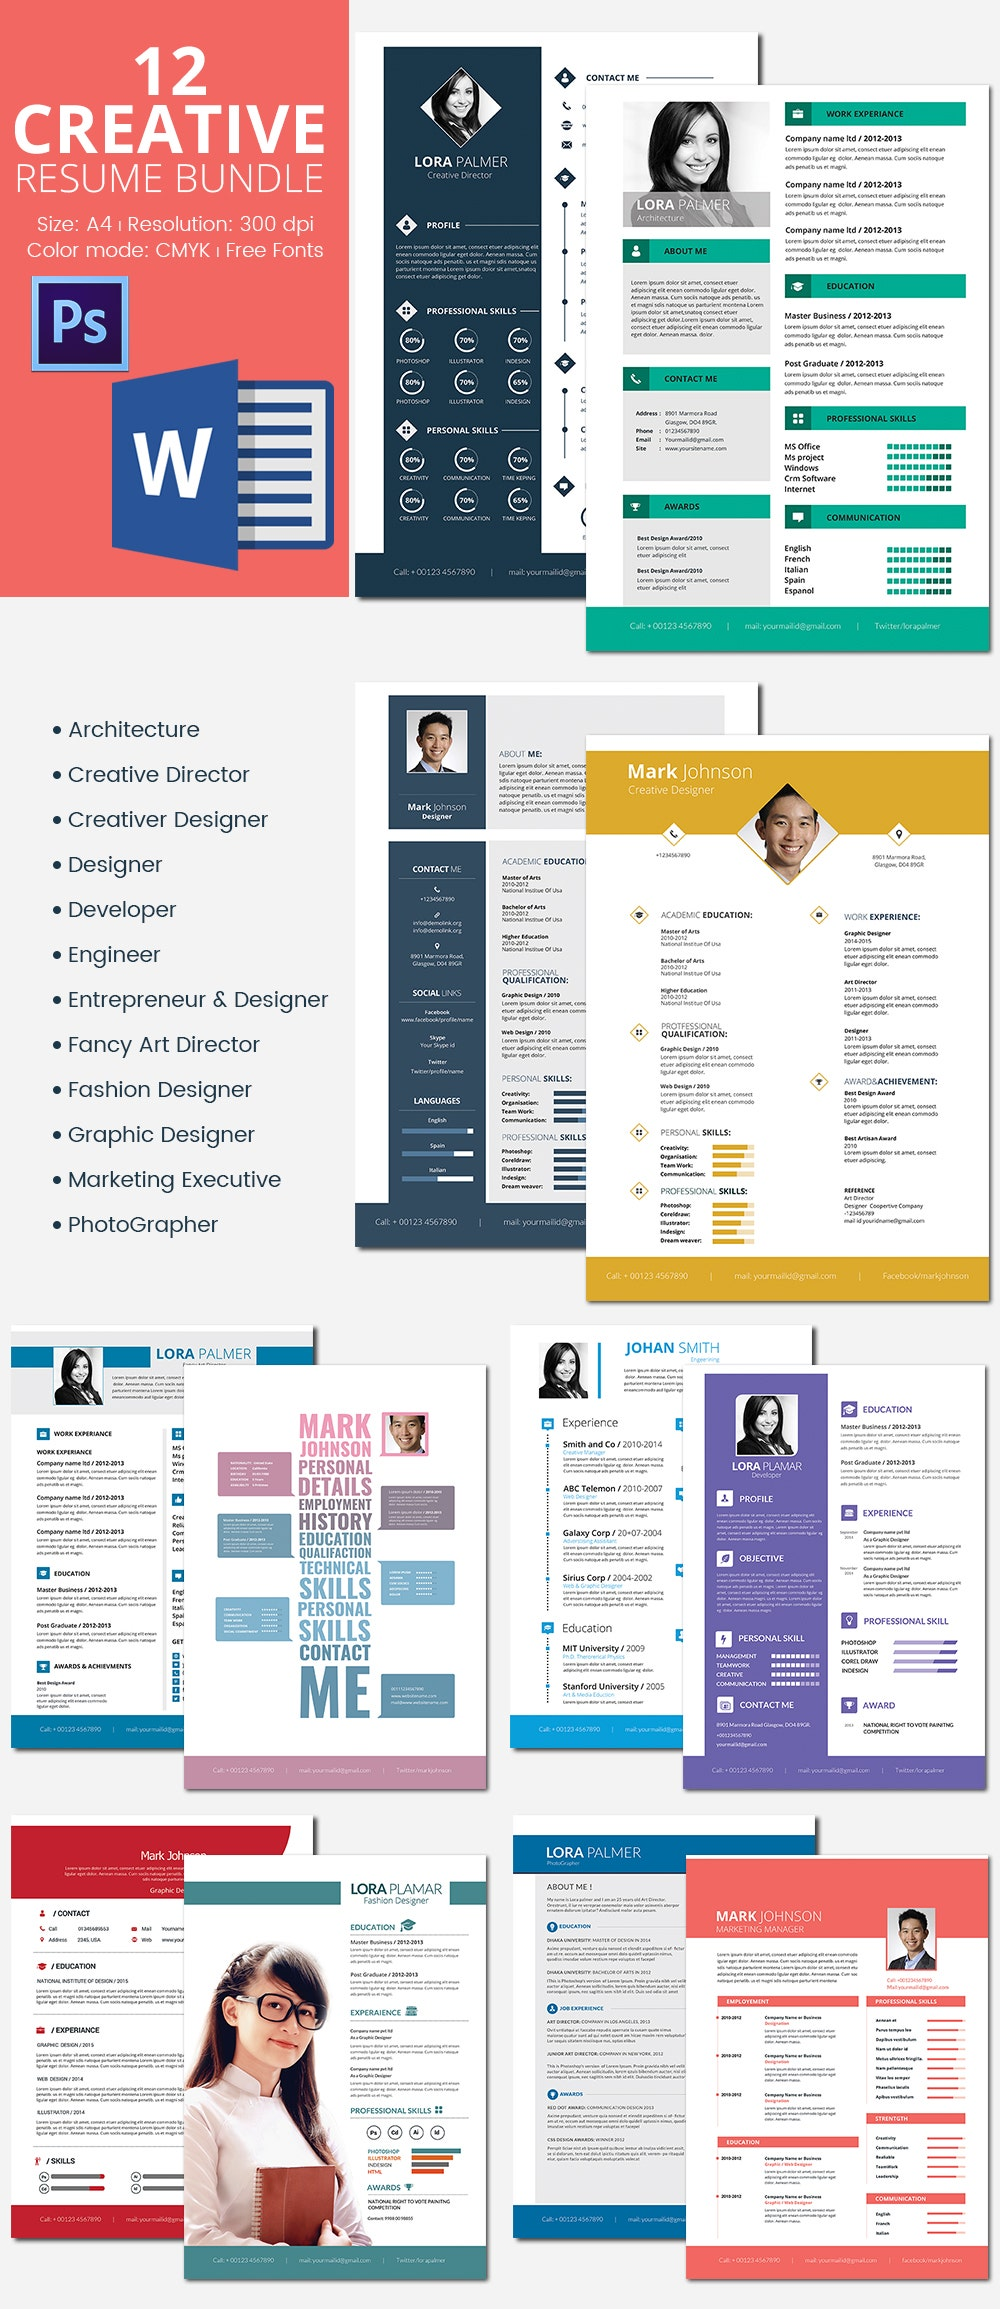 12 resume bundle templates - Creative Resume Template Download Free